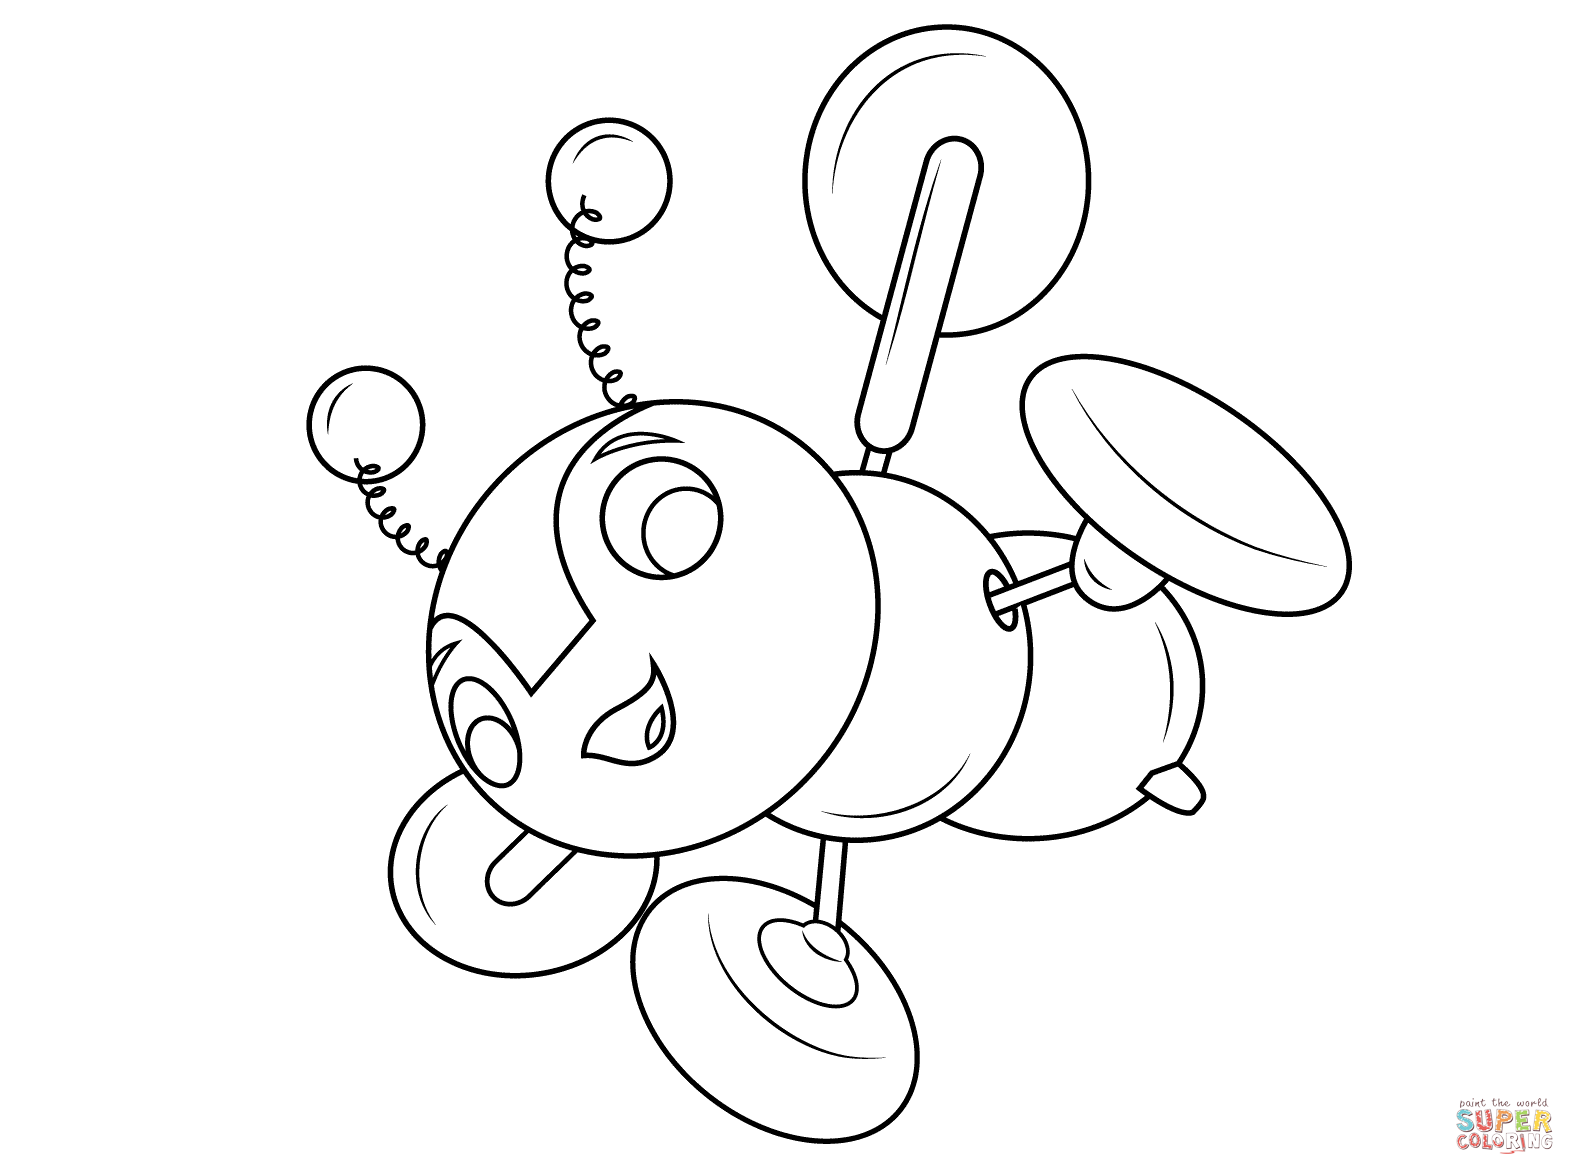 Buzzy Bee Coloring Page